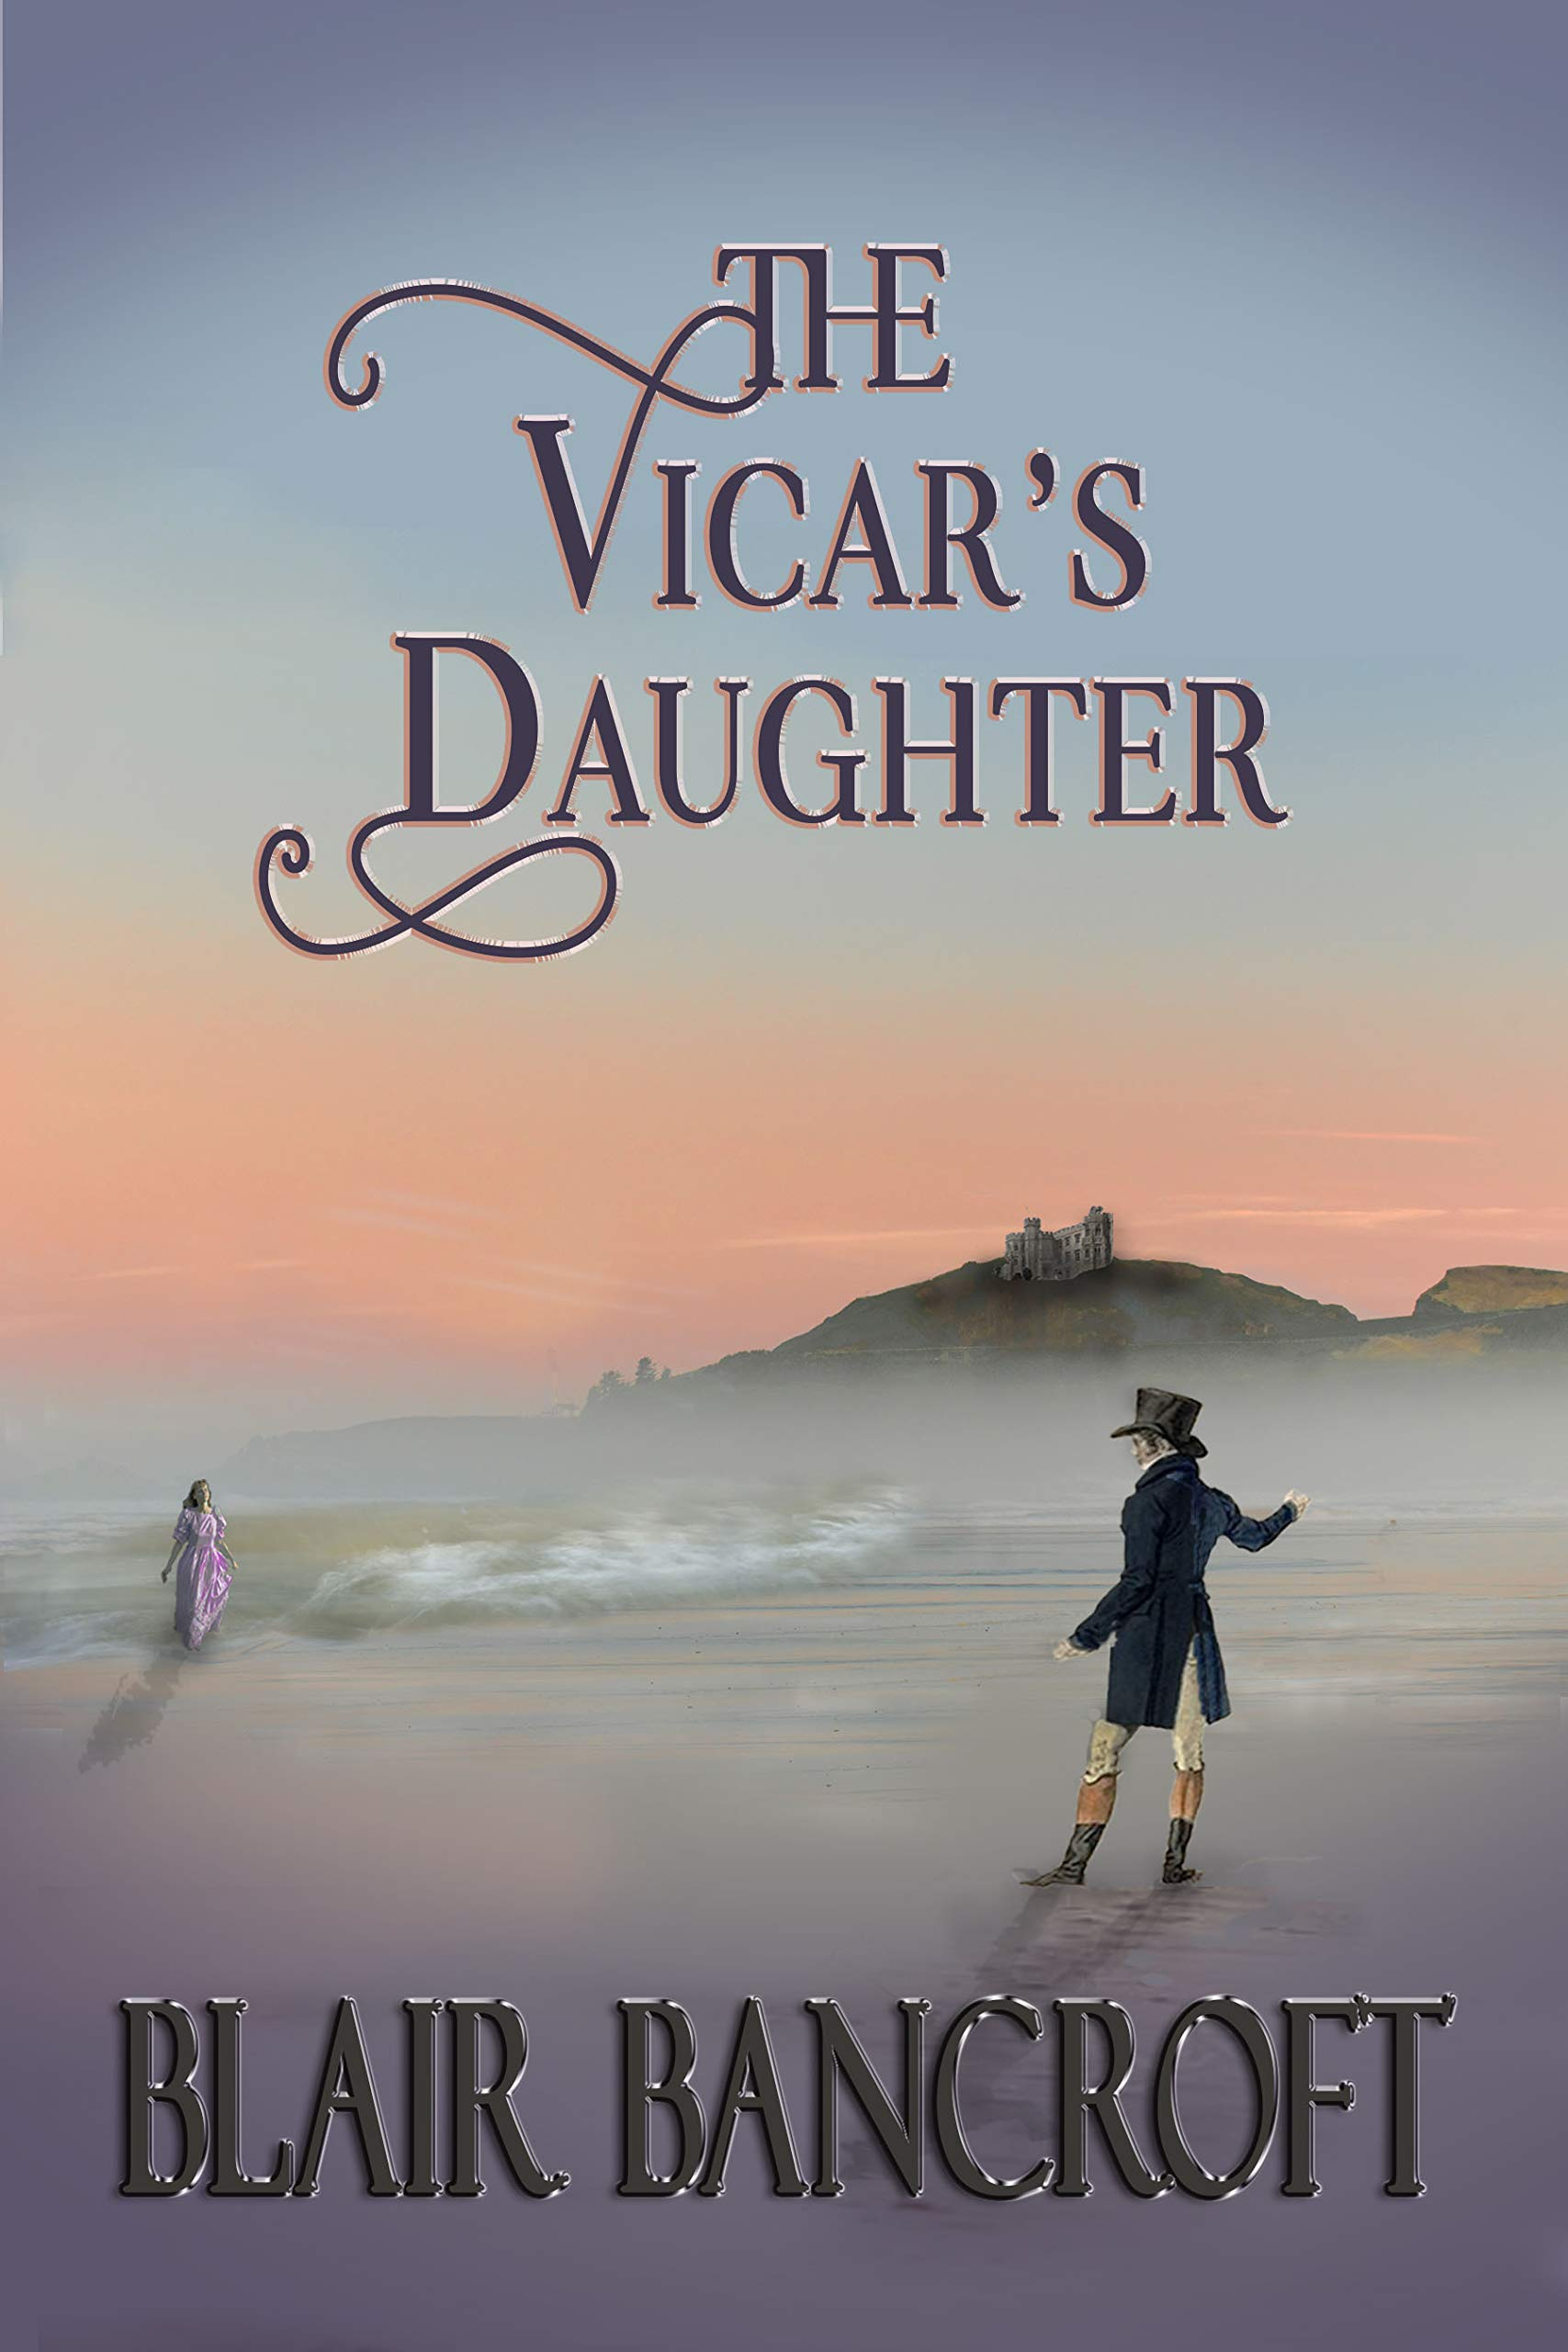 The Vicar's Daughter: a young woman encounters misogyny, smugglers, a ghost cat, & an earl